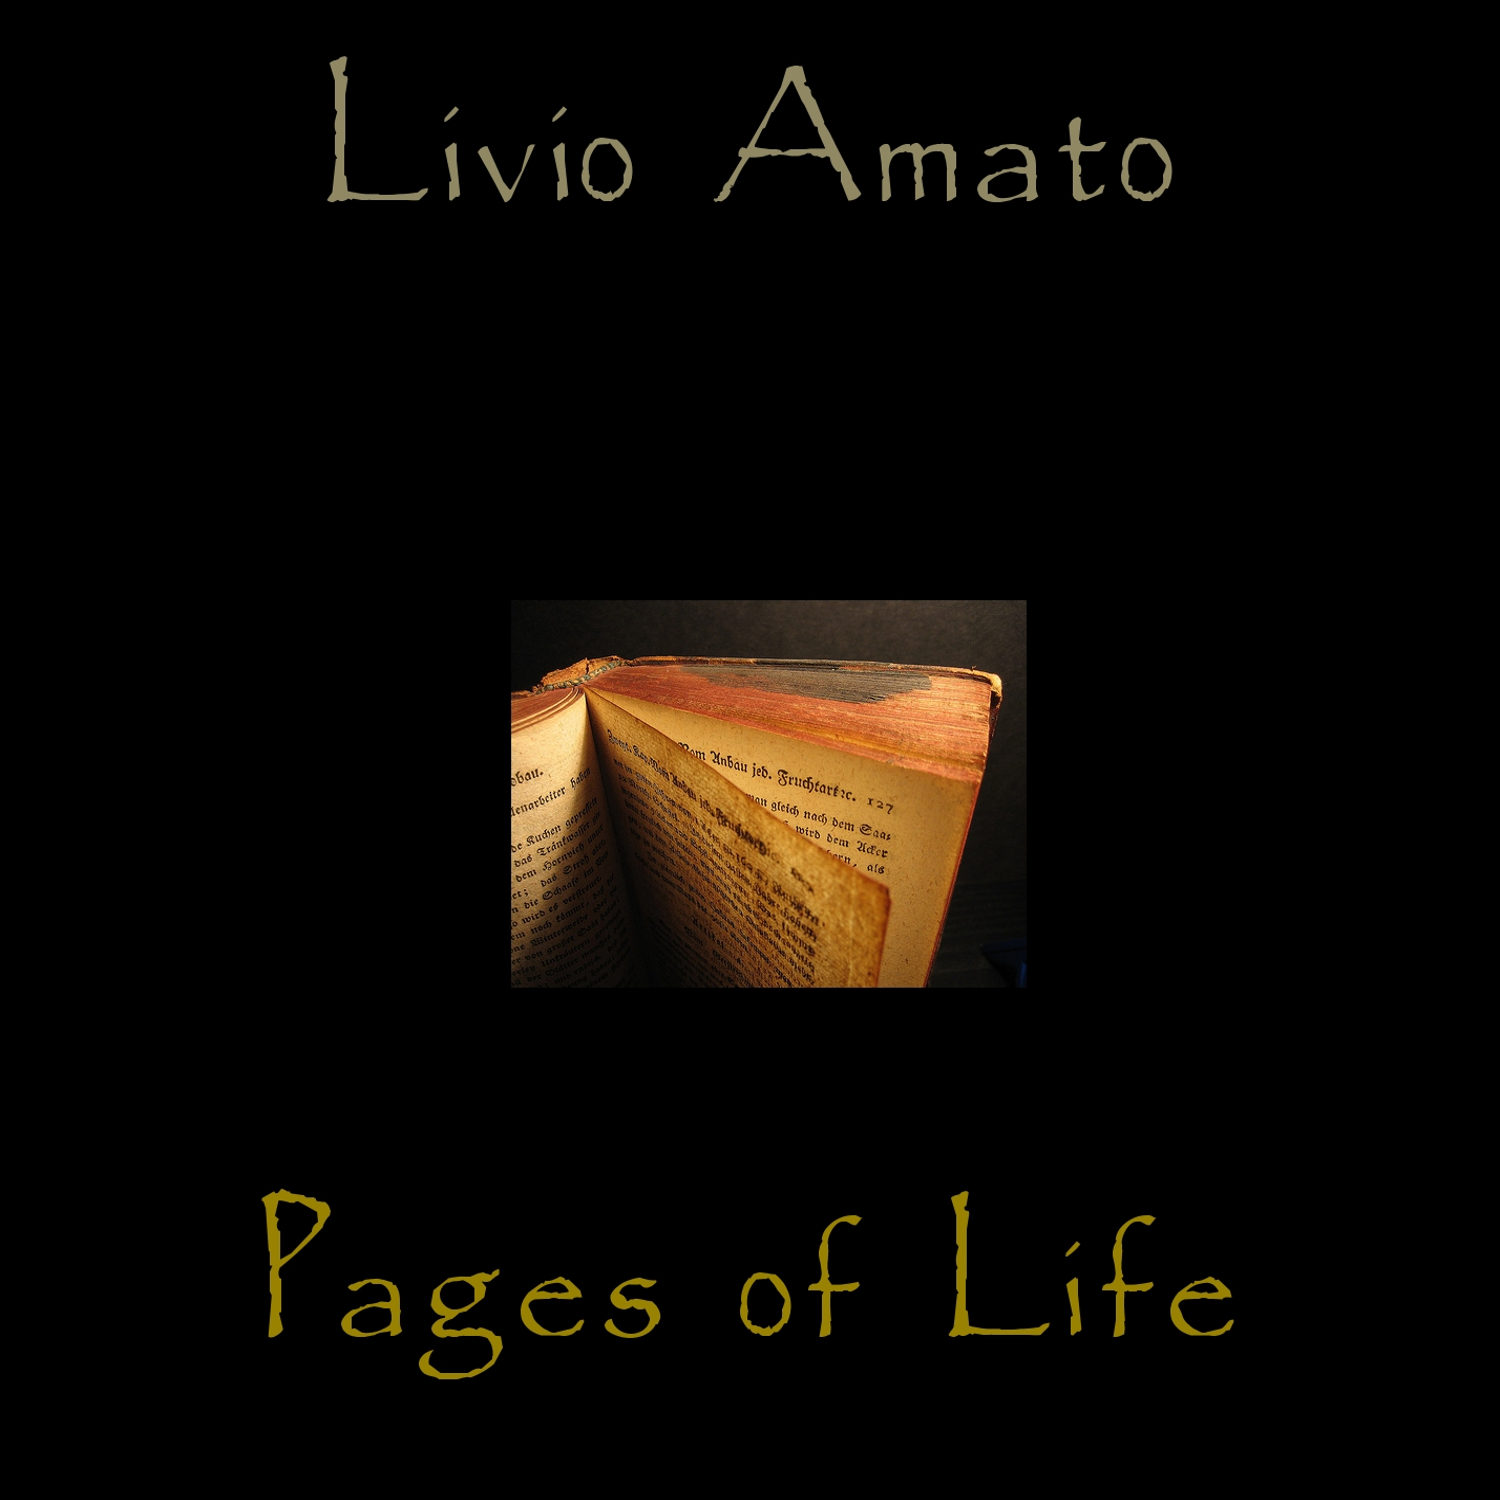 Livio Amato Pages of Life